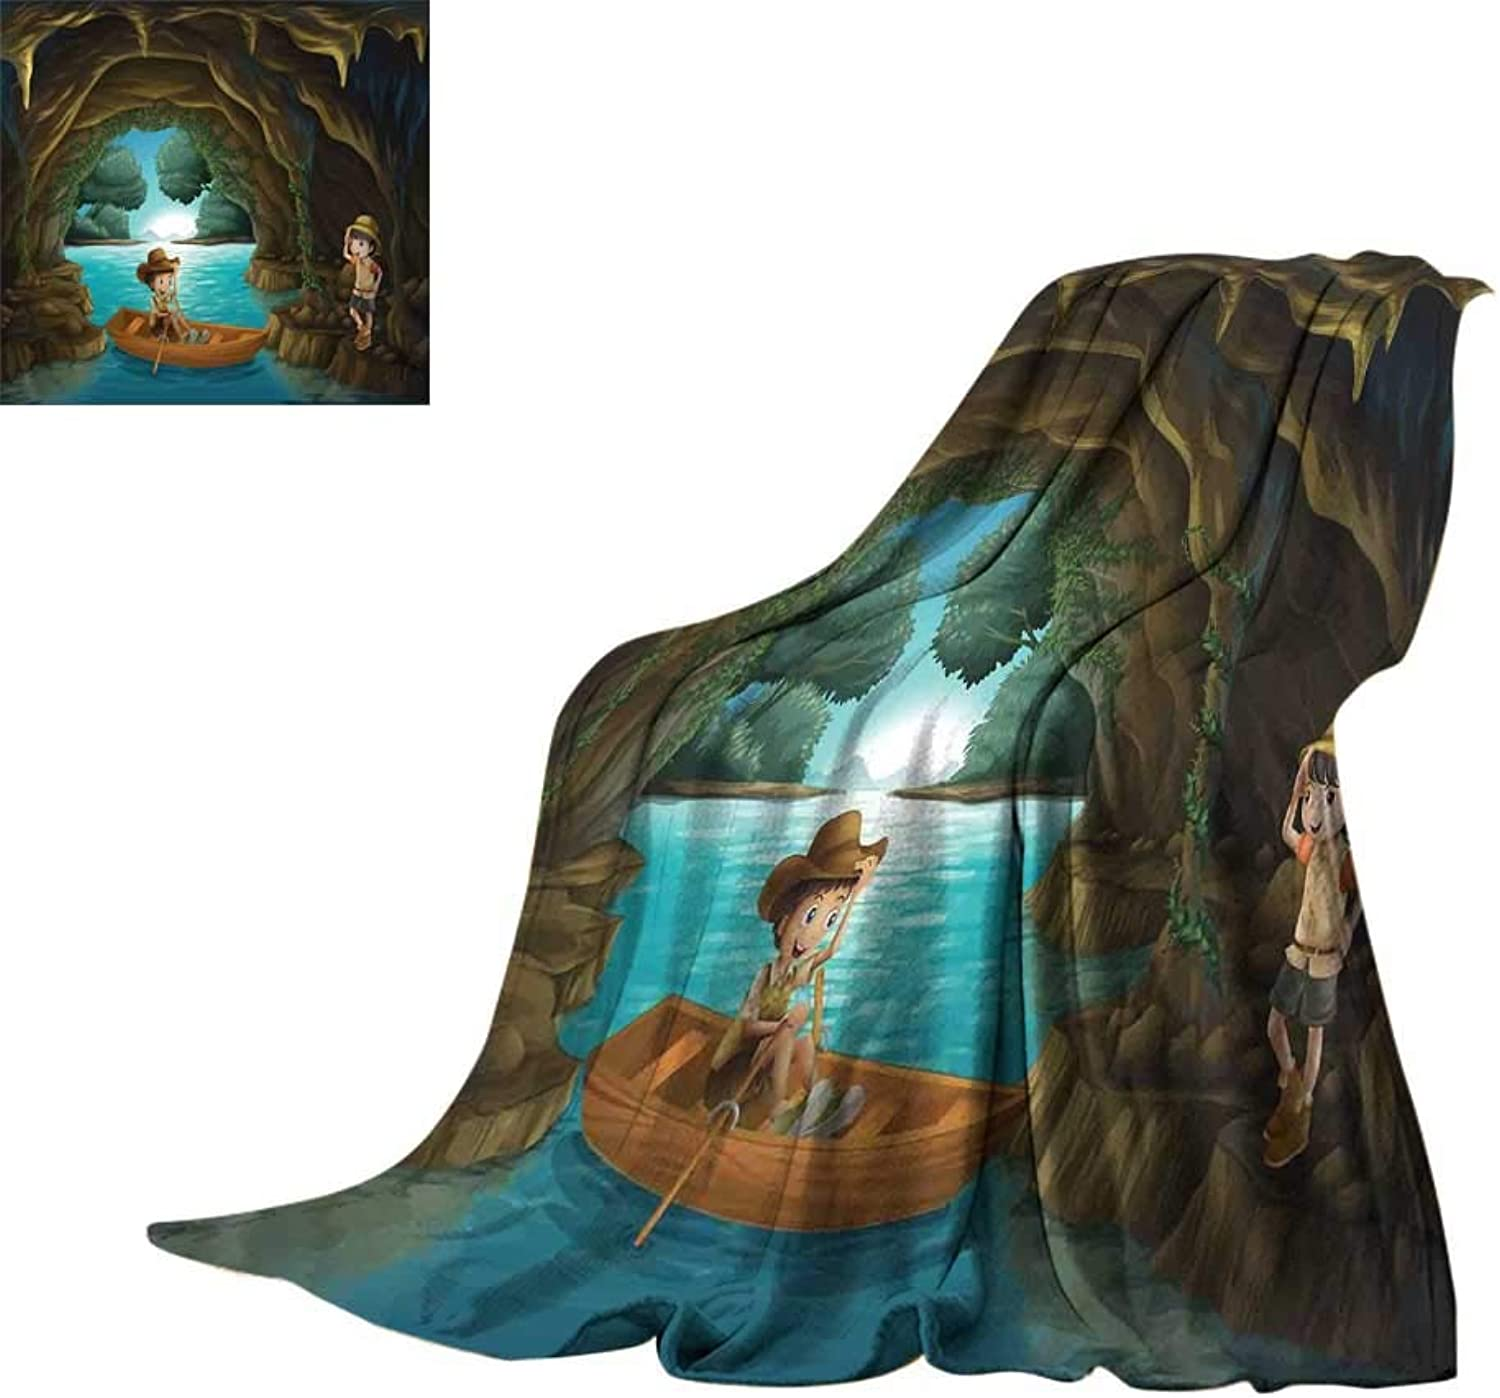 RenteriaDecor Explore,Fashion Warm All Season Blanket Girl and Boy in a Cave with River and Rowboat Boy Scouts Cartoon Style Illustration Blanket for Bed Couch W60 x L50 inch